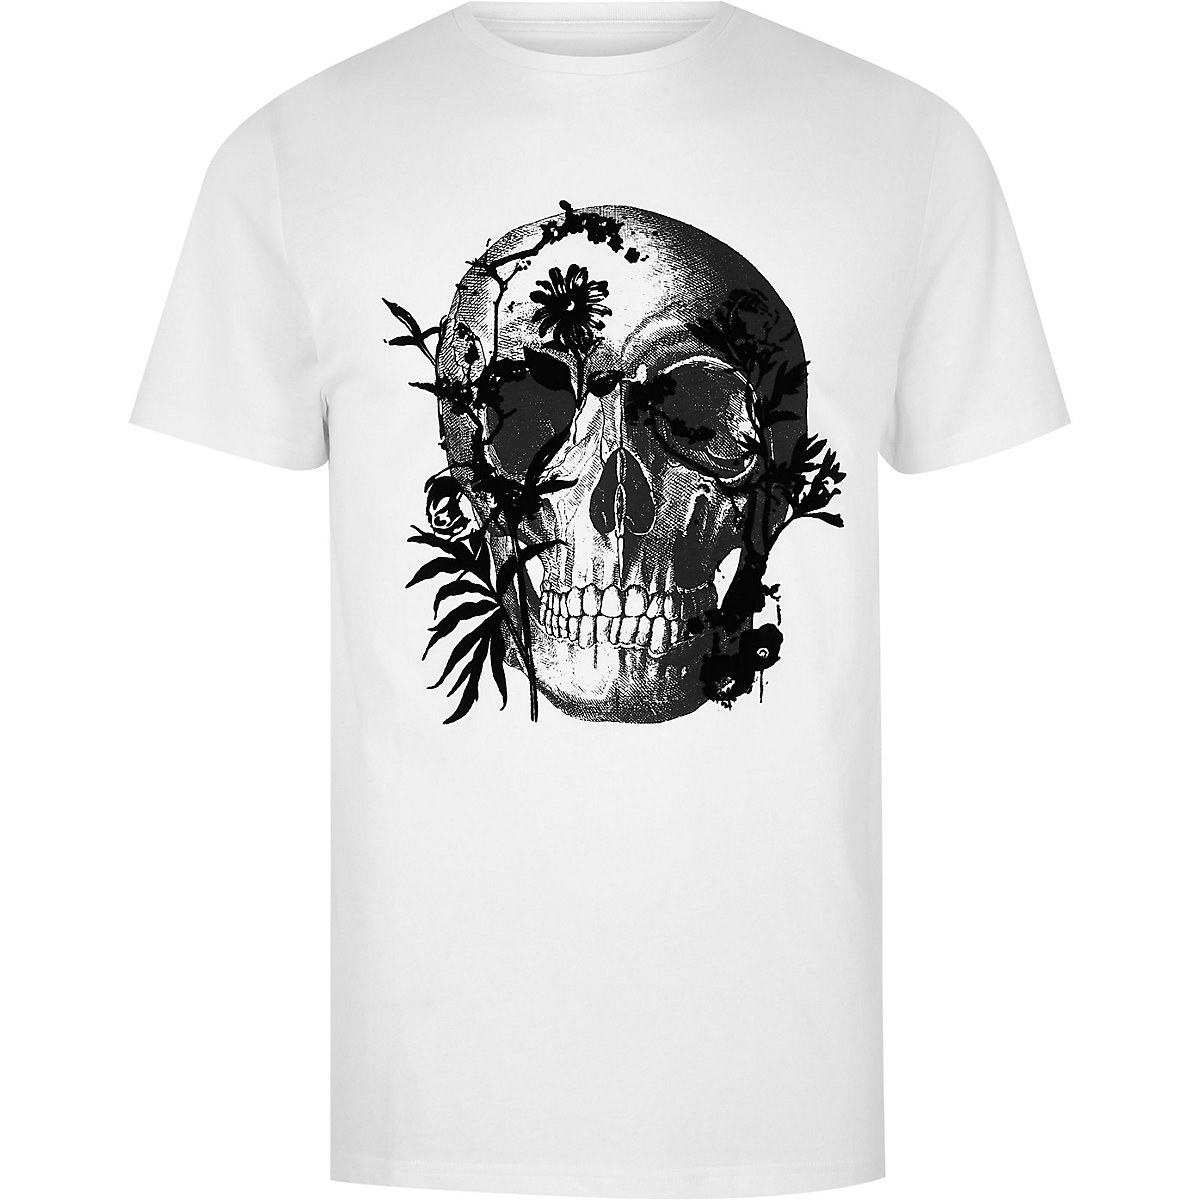 Big & Tall – Slim Fit T-Shirt mit Totenkopfprint